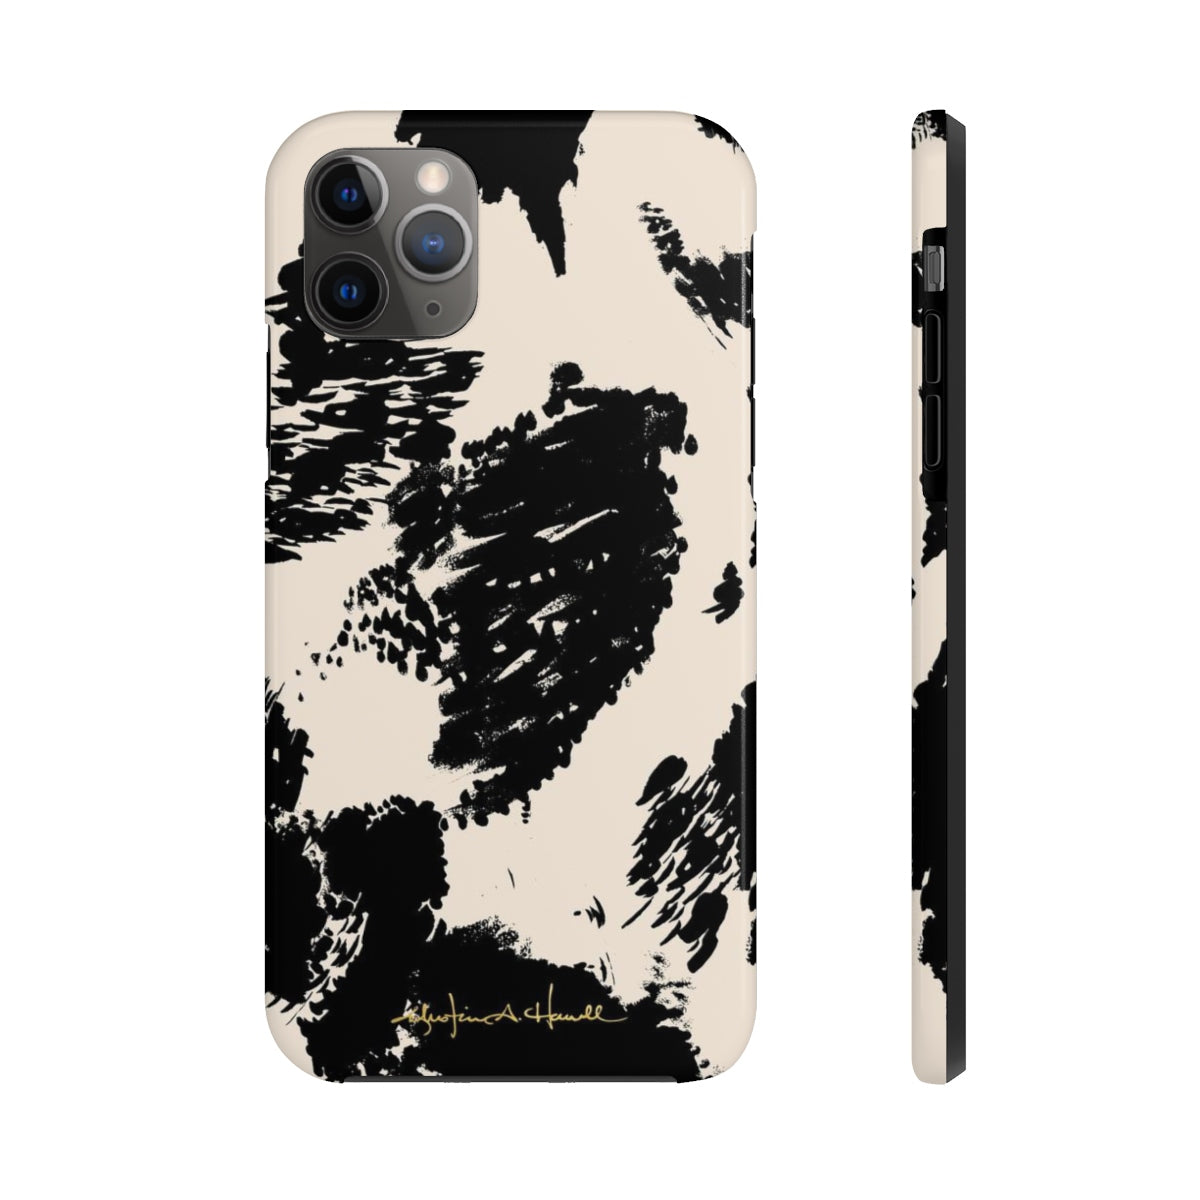 Bessie Added Amour Phone Case